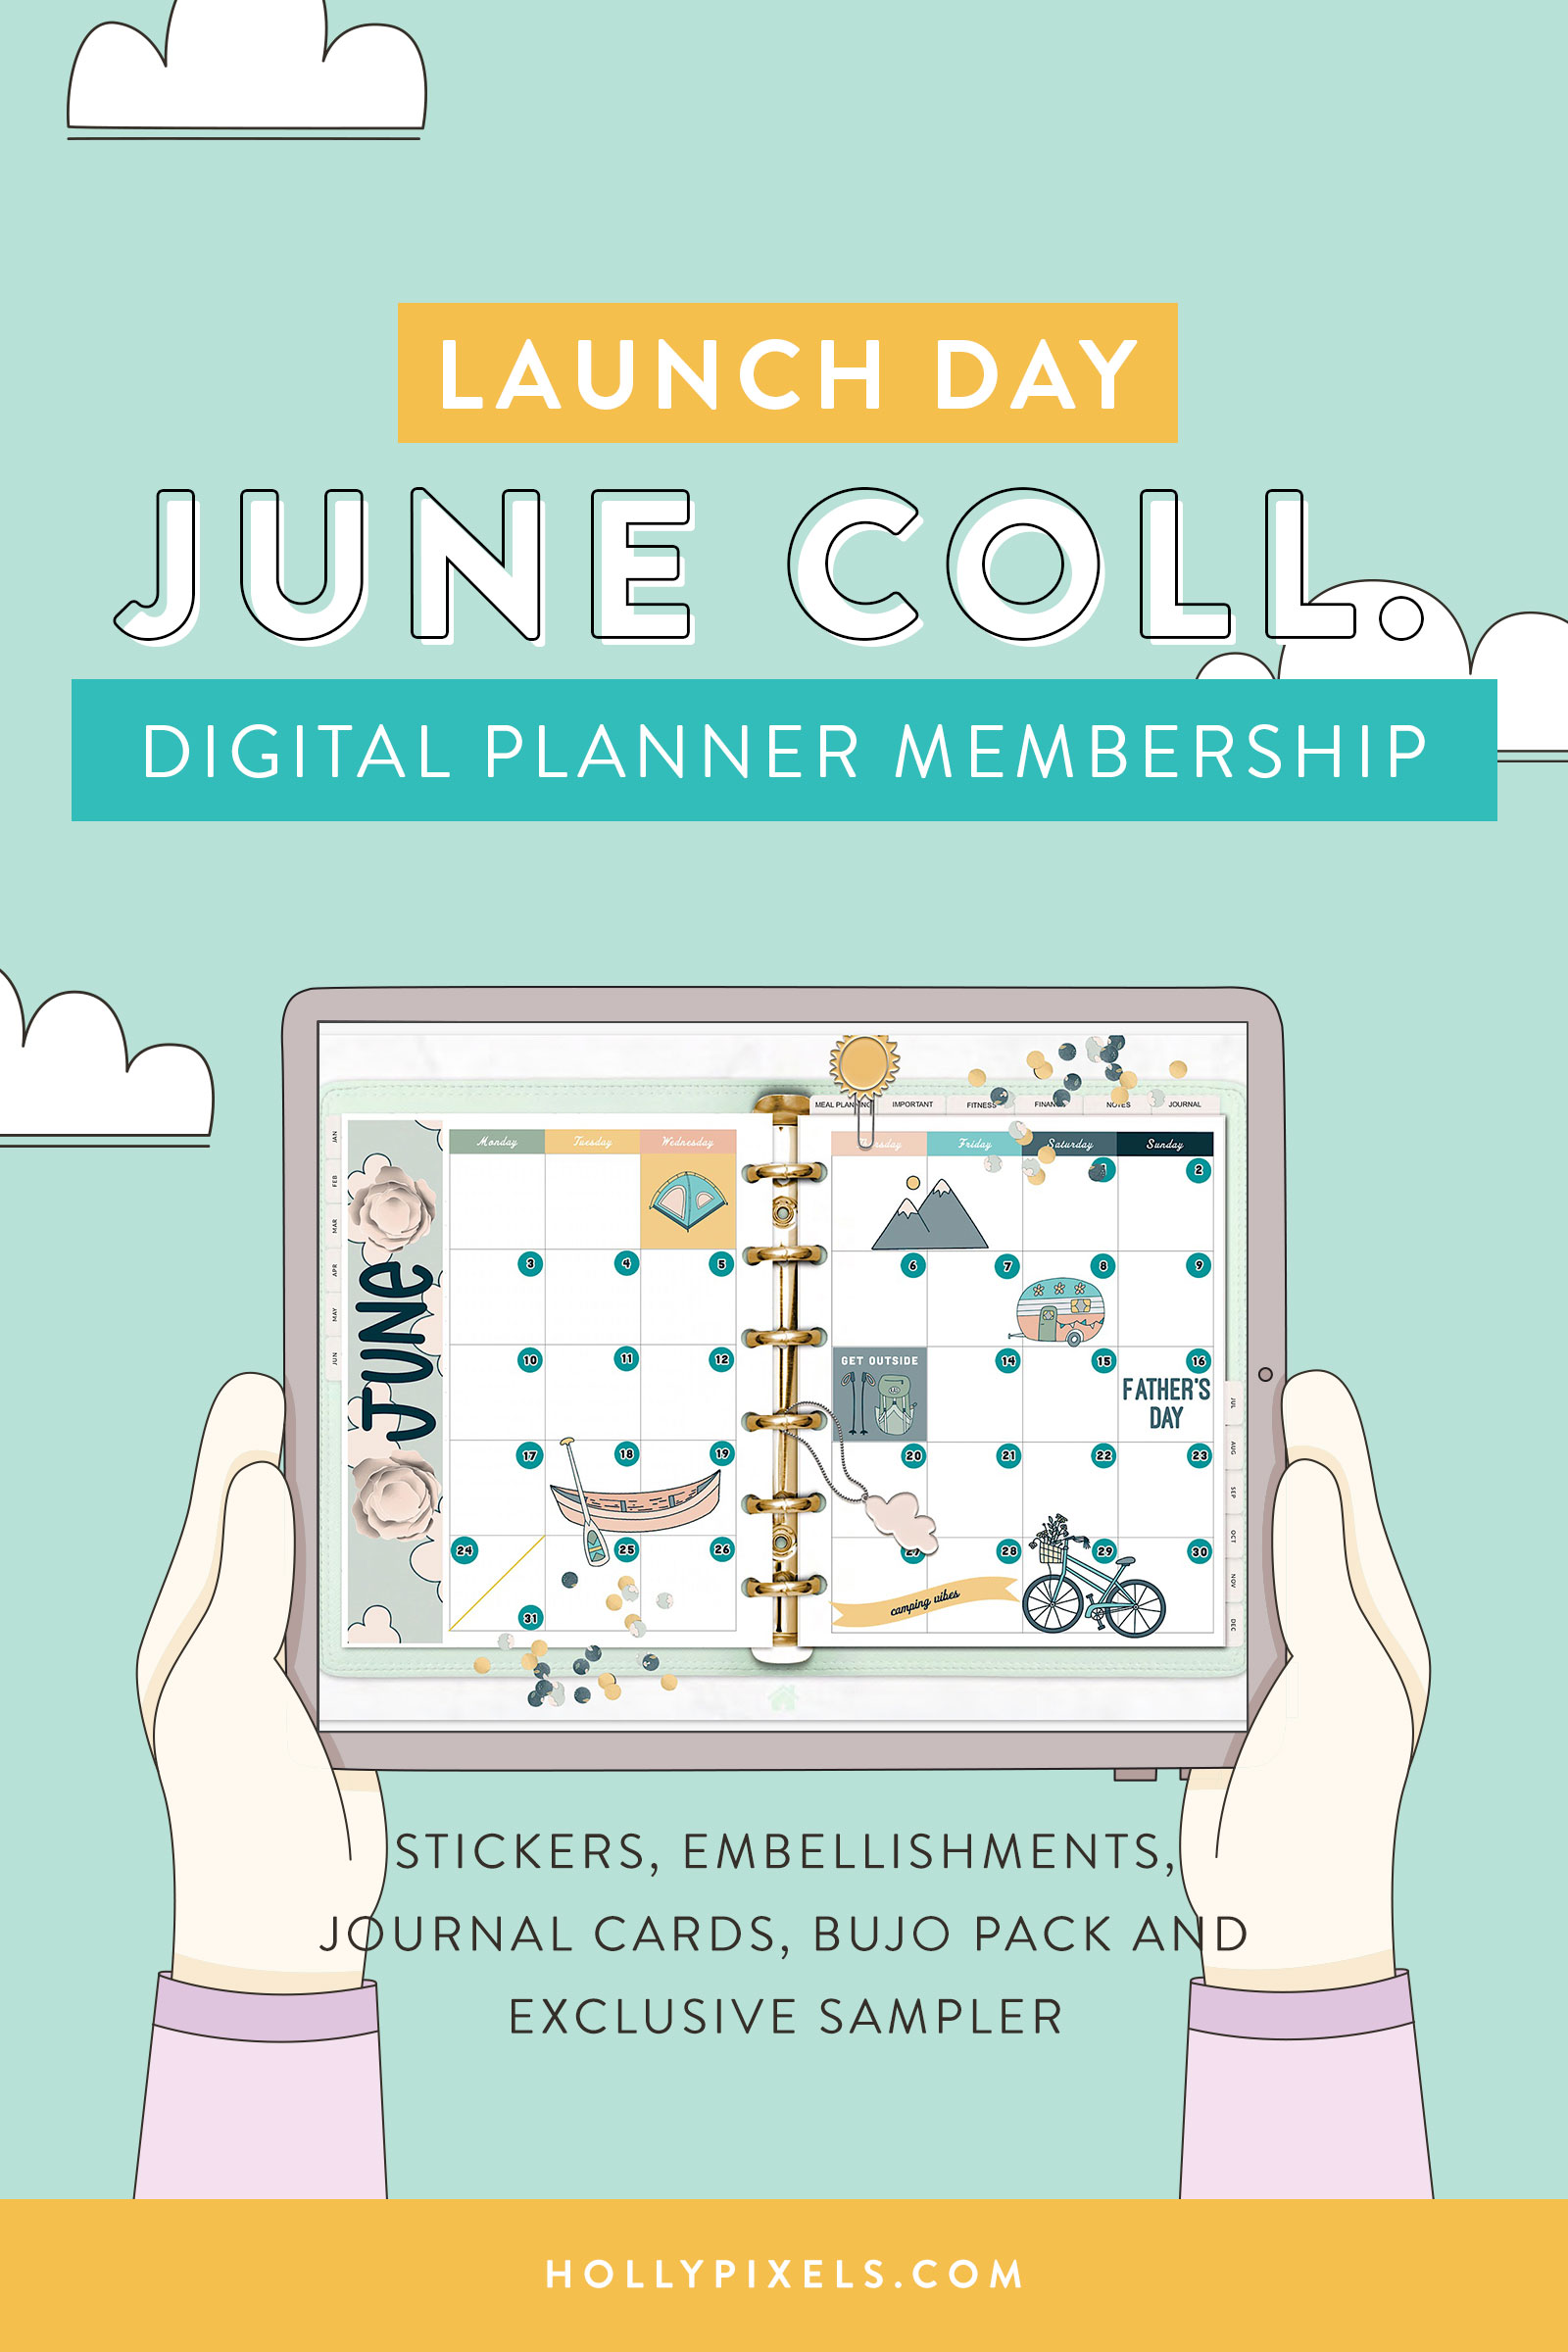 A new month is here! If you are already buying our digital planning products each month why not join our Pixel Pack Membership?